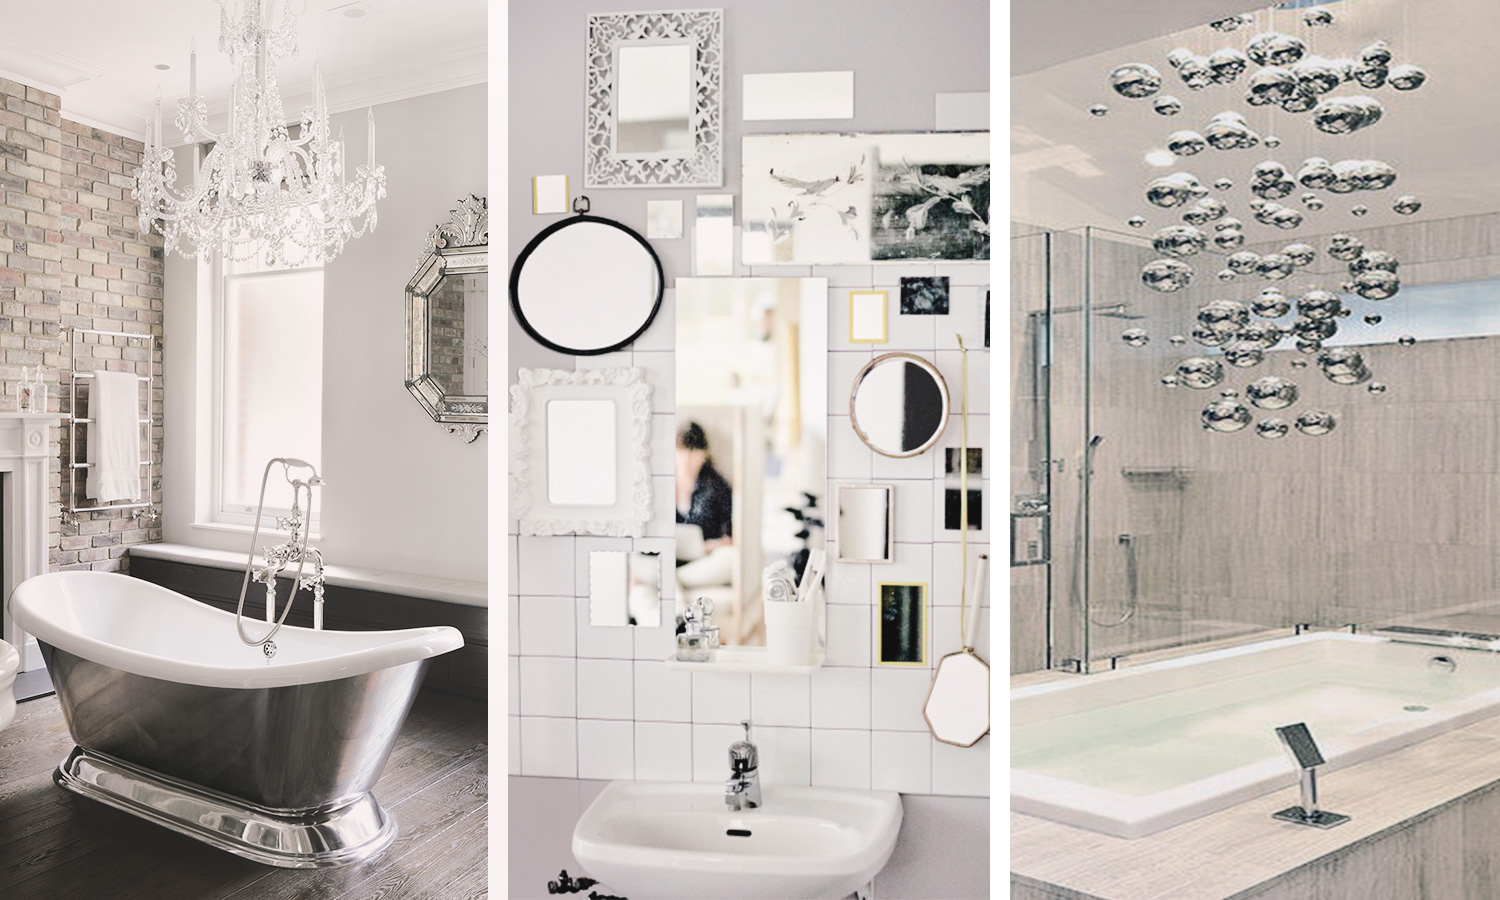 Bathroom inspiration glitz and glam eclectic home for Bathroom decor inspiration